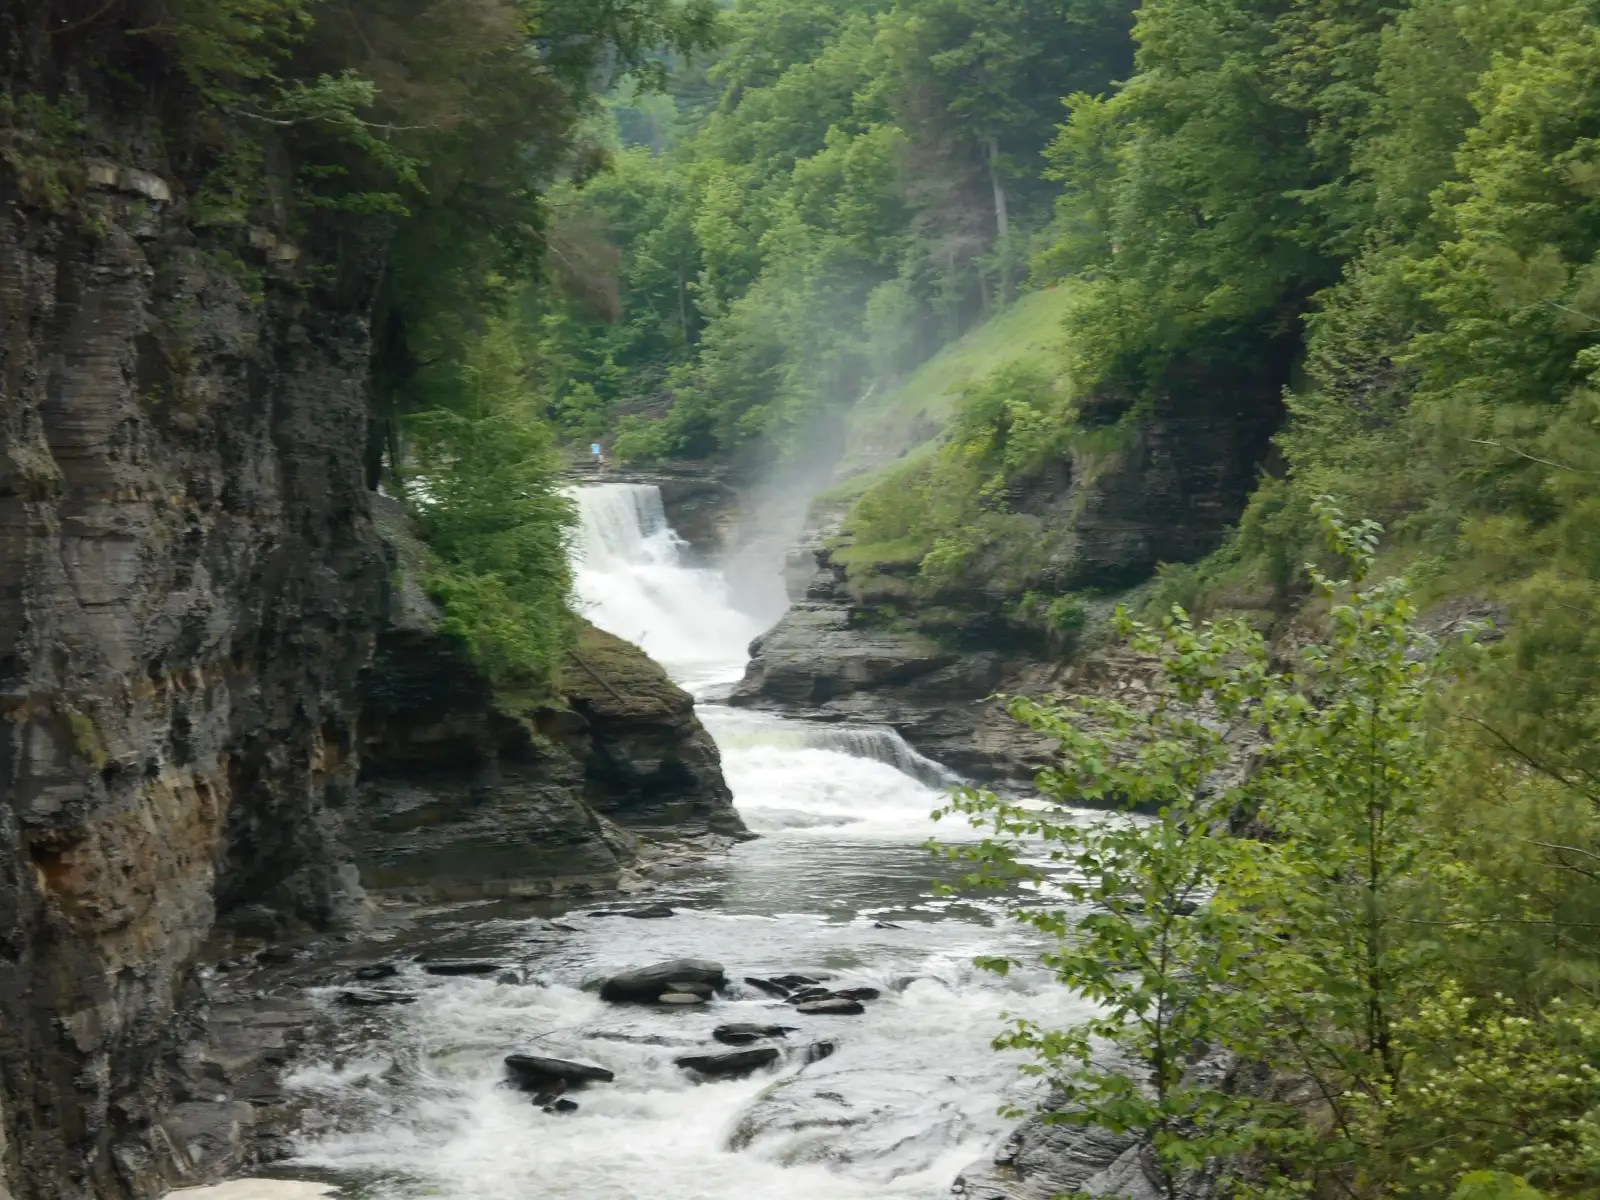 Letchworth State Park Campground Letchworth NY 3